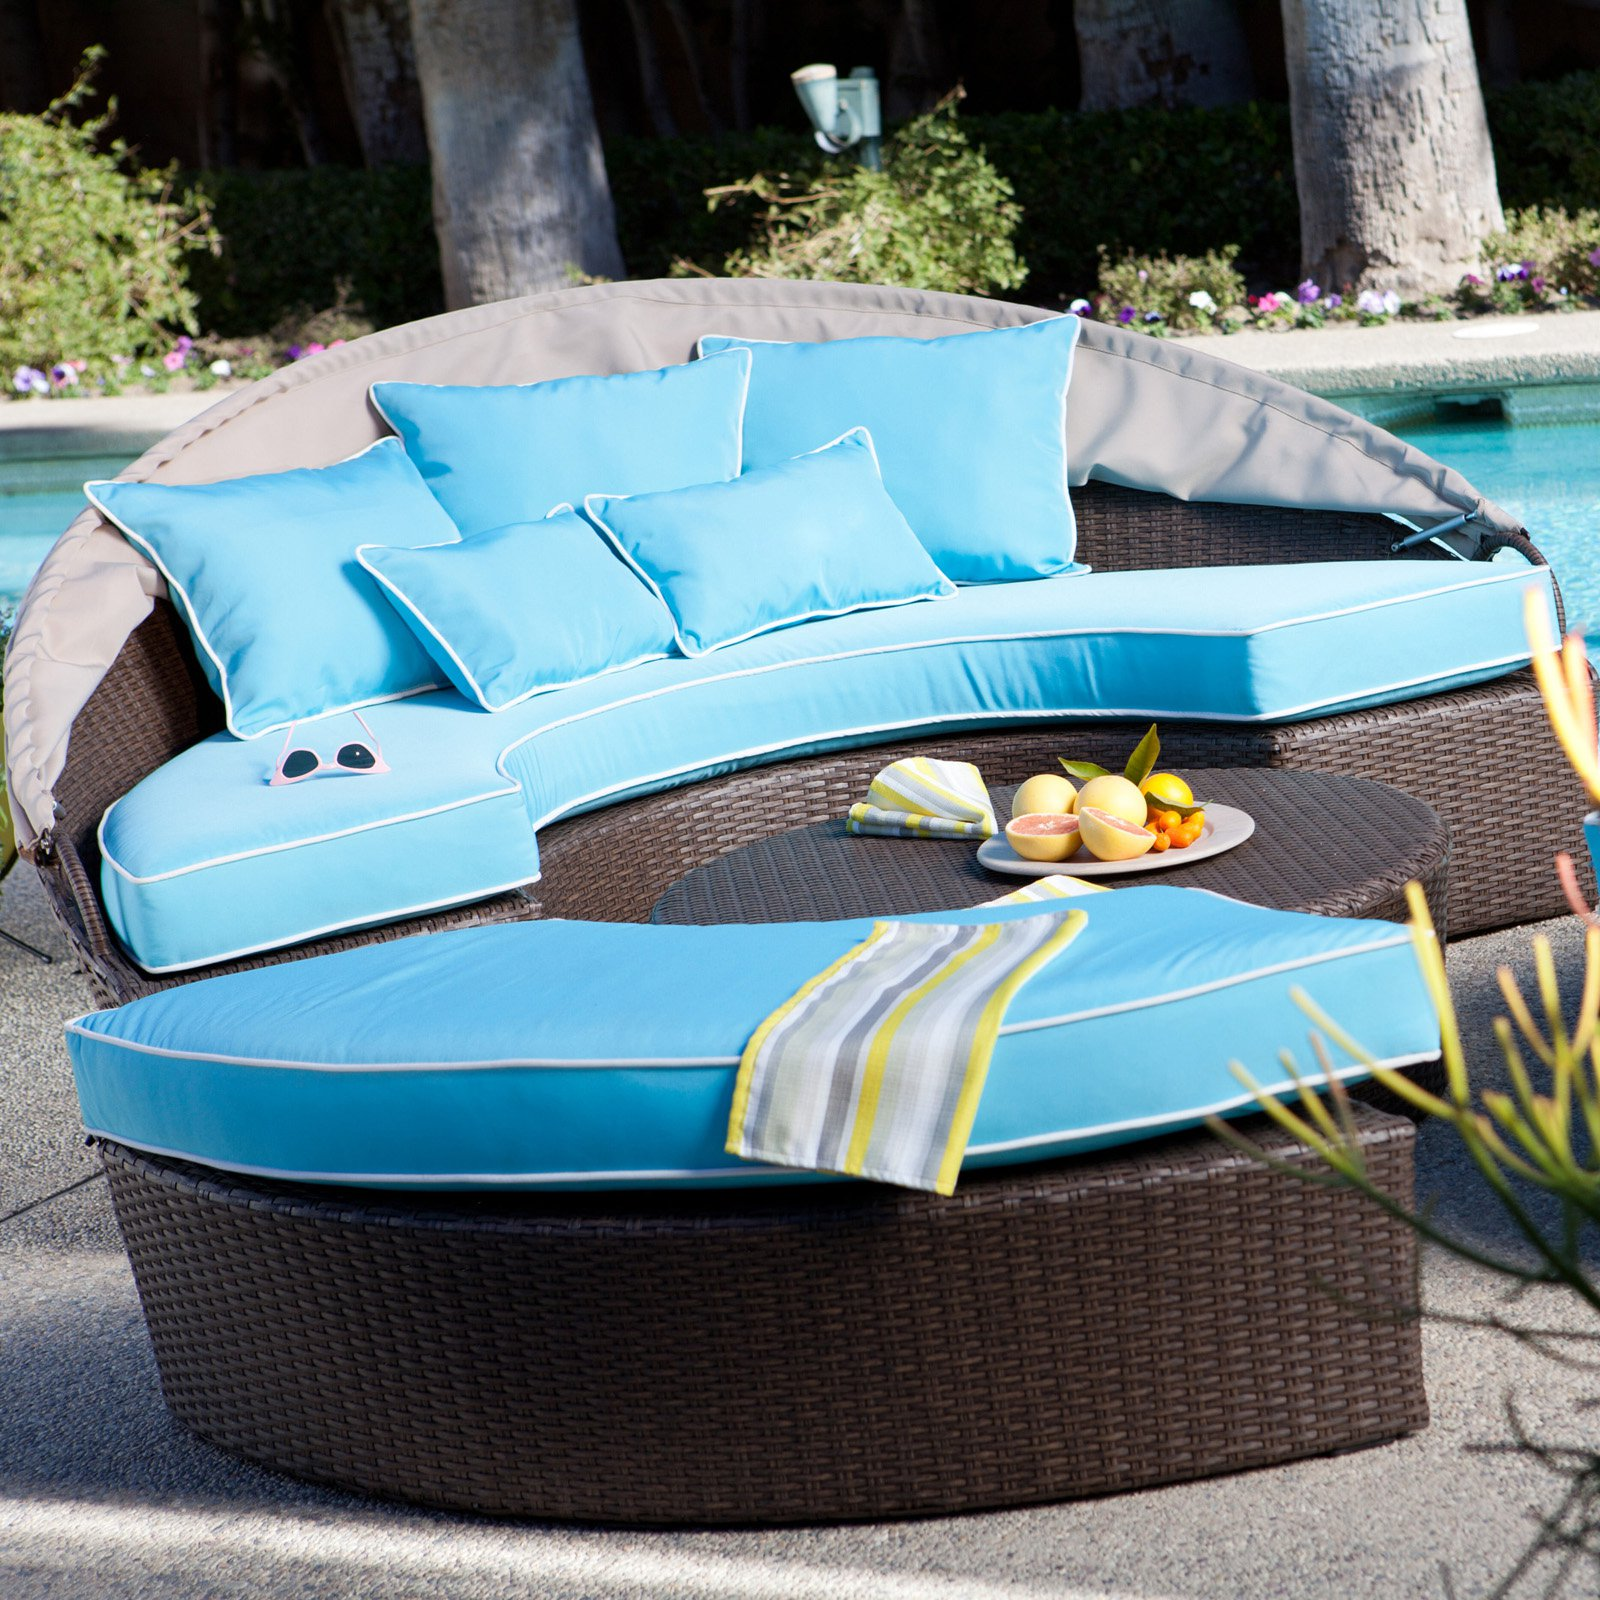 Belham Living Rendezvous All-Weather Wicker Sectional Daybed